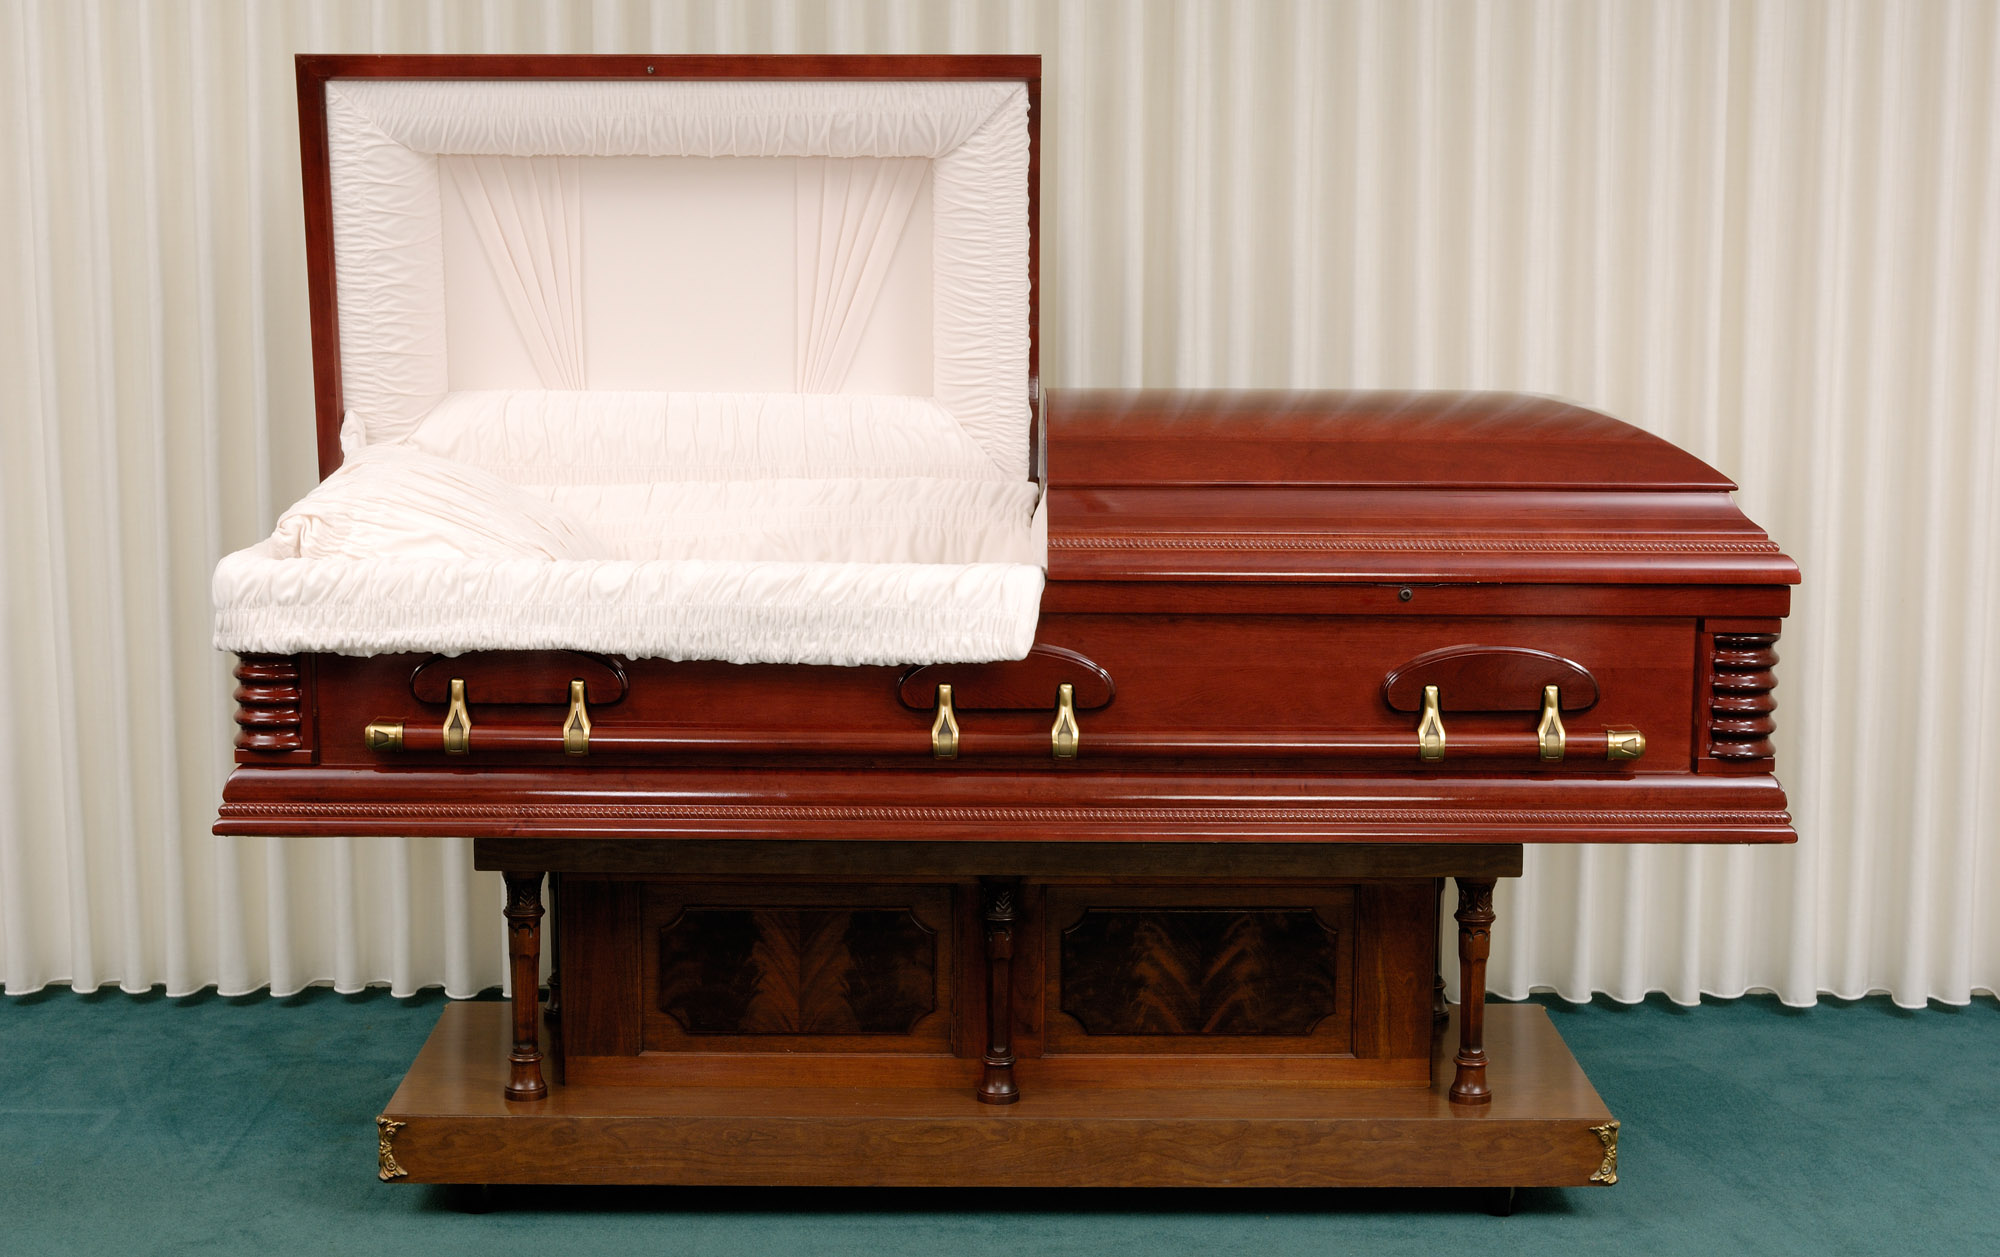 empty coffin - photo #33